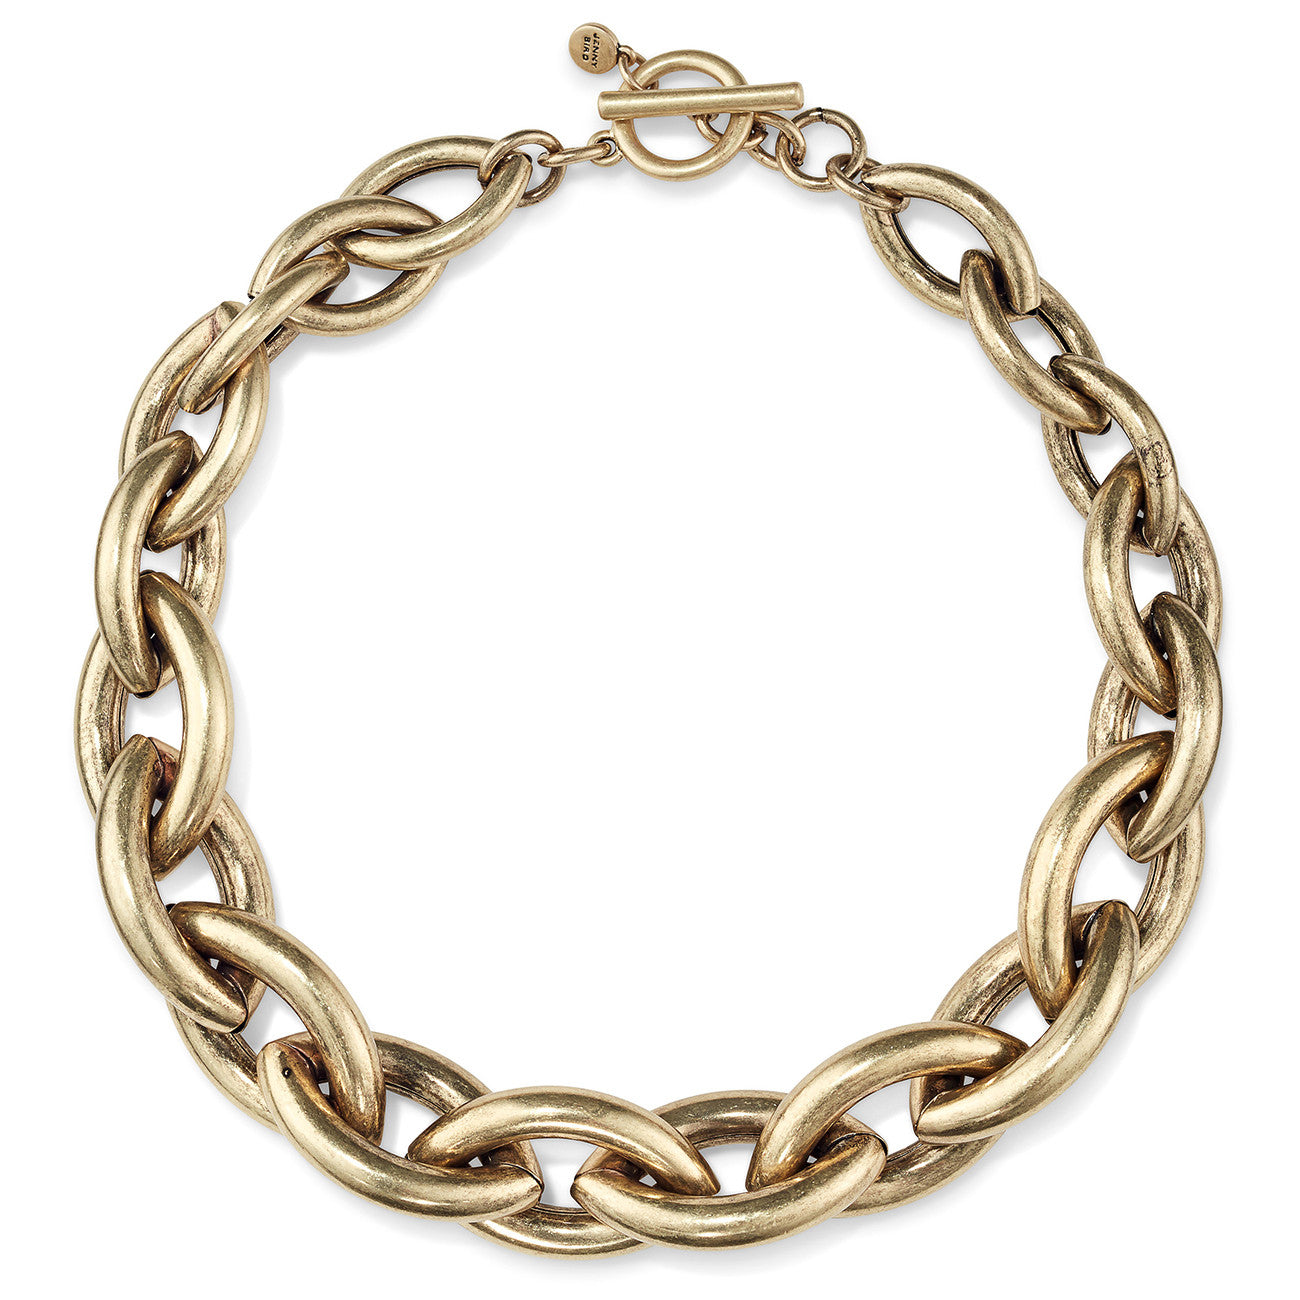 Sloane Collar by Jenny Bird in Oxidized Gold